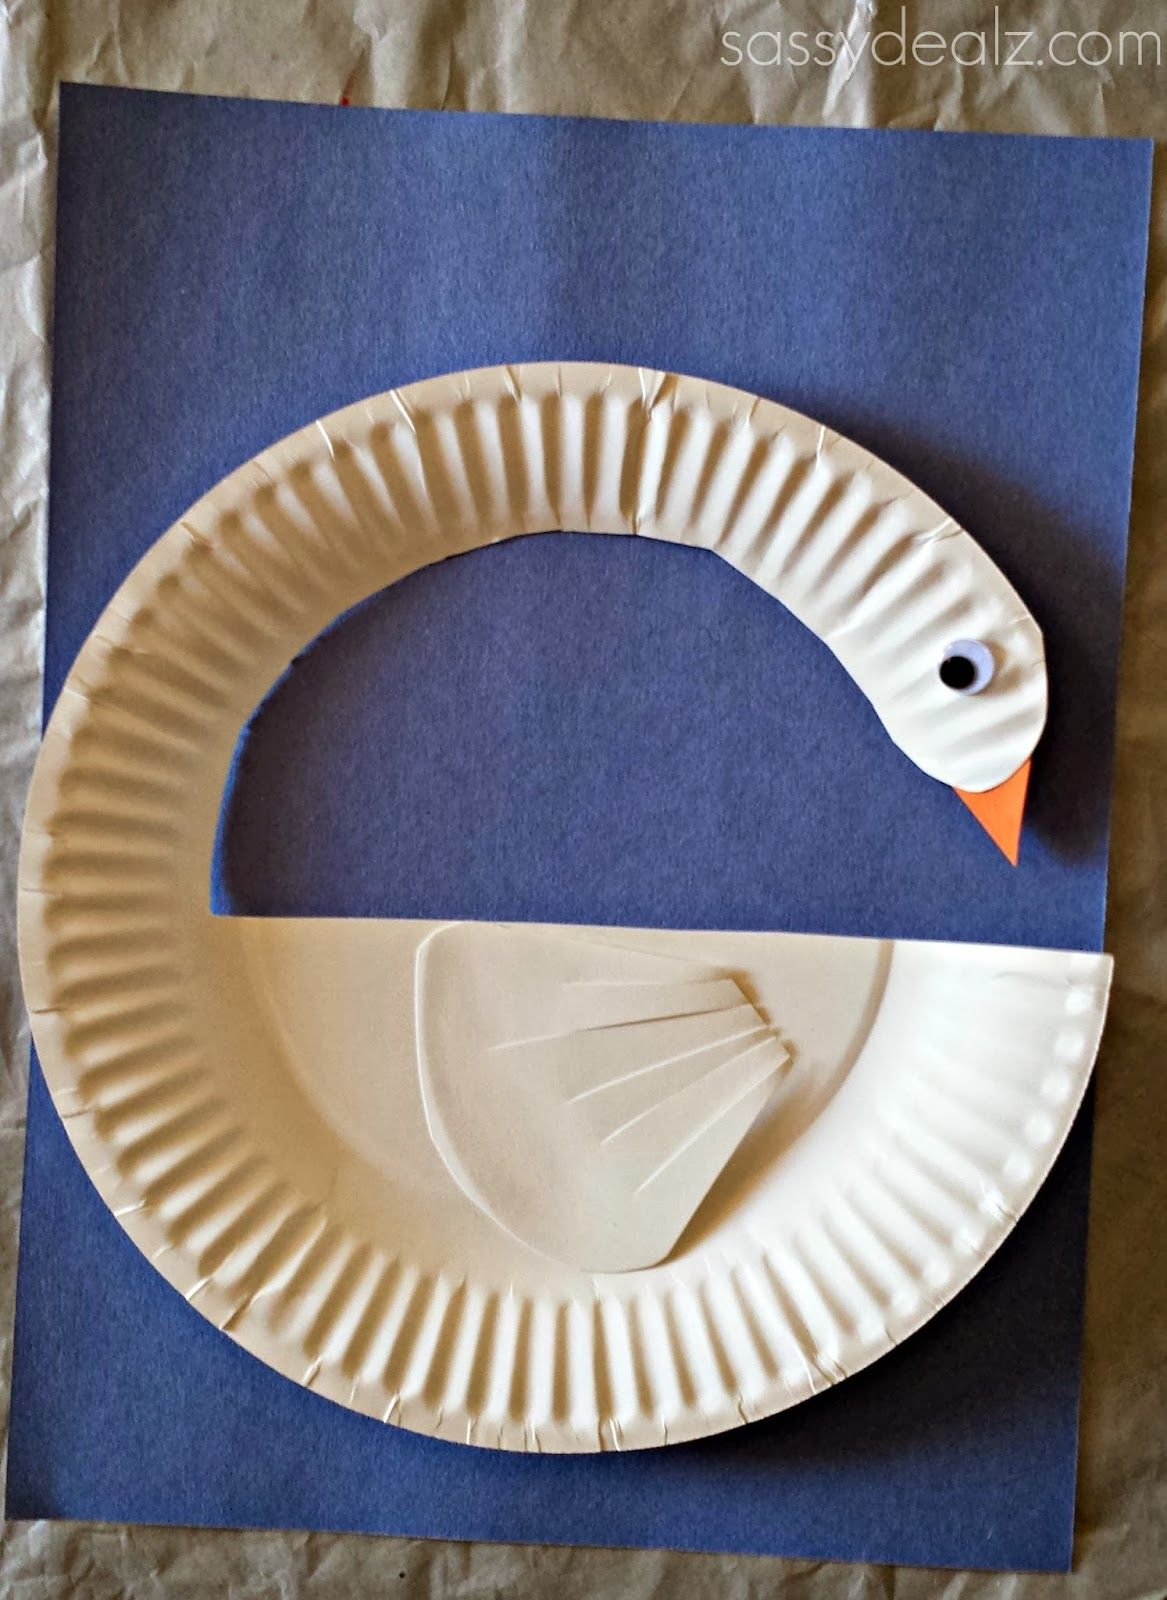 Paper plate diy crafts to make the wing part take the first paper plate diy crafts to make the wing part take the first extra piece jeuxipadfo Image collections